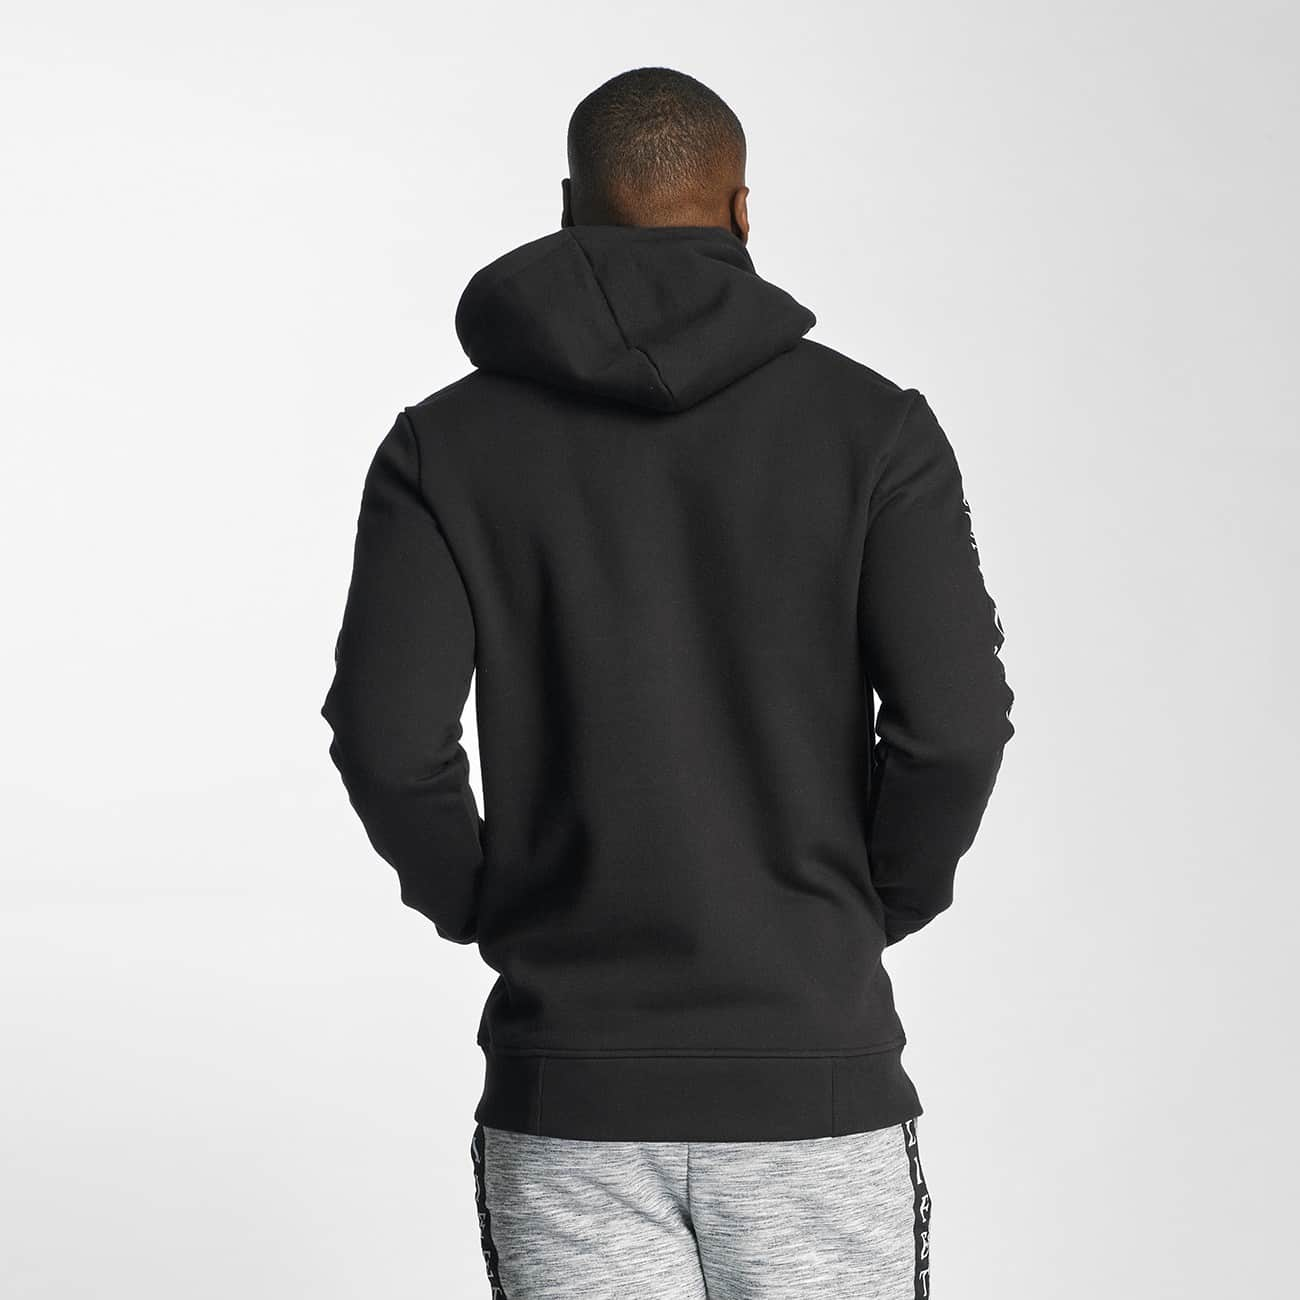 streetwear fashion online shop thug life combine hoody. Black Bedroom Furniture Sets. Home Design Ideas